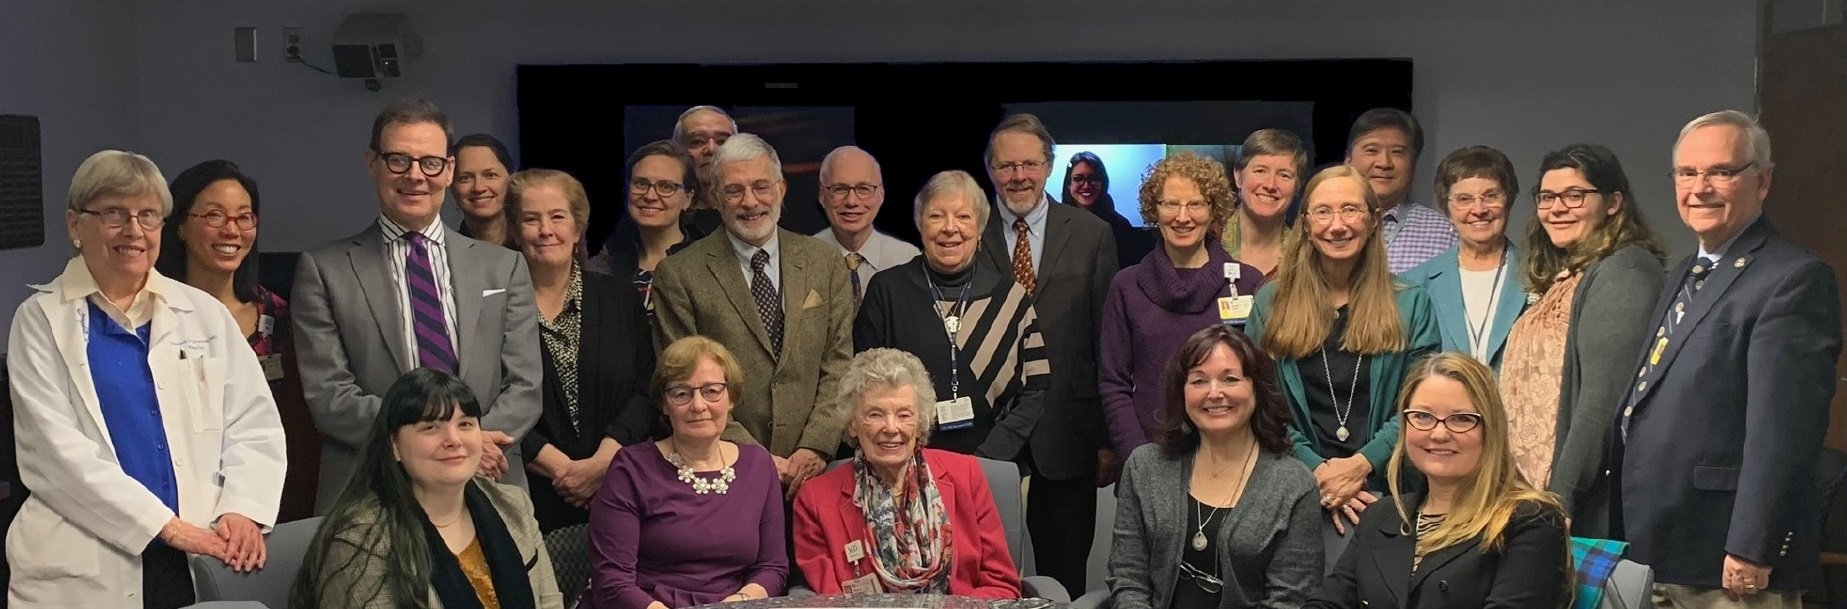 Family, friends and colleagues gathered together in January to celebrate Dr. Lawrence's (pictured center) career as she transitioned to Professor Emeritus.